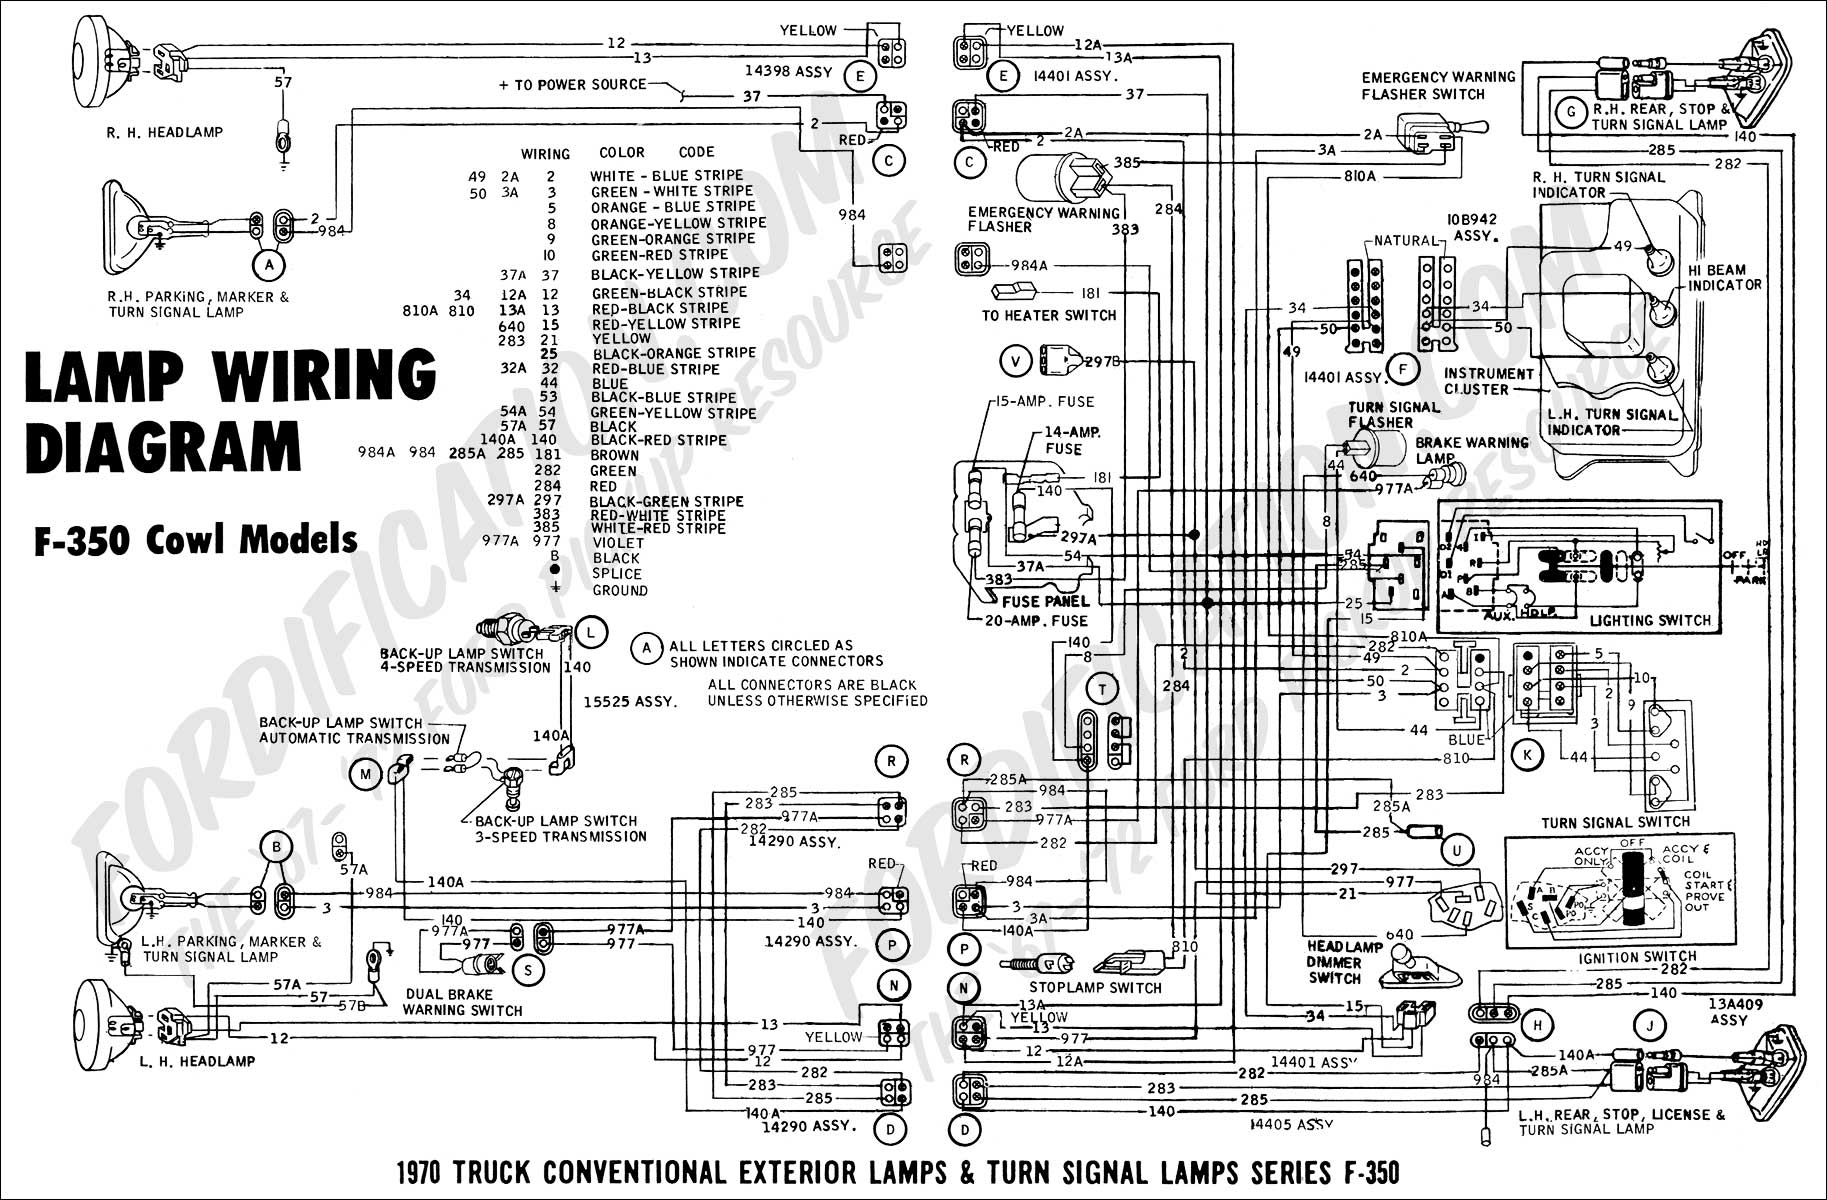 hight resolution of 1999 f250 wiring diagram best wiring diagram 2001 f250 wiring diagram 99 f350 wiring schematic wiring